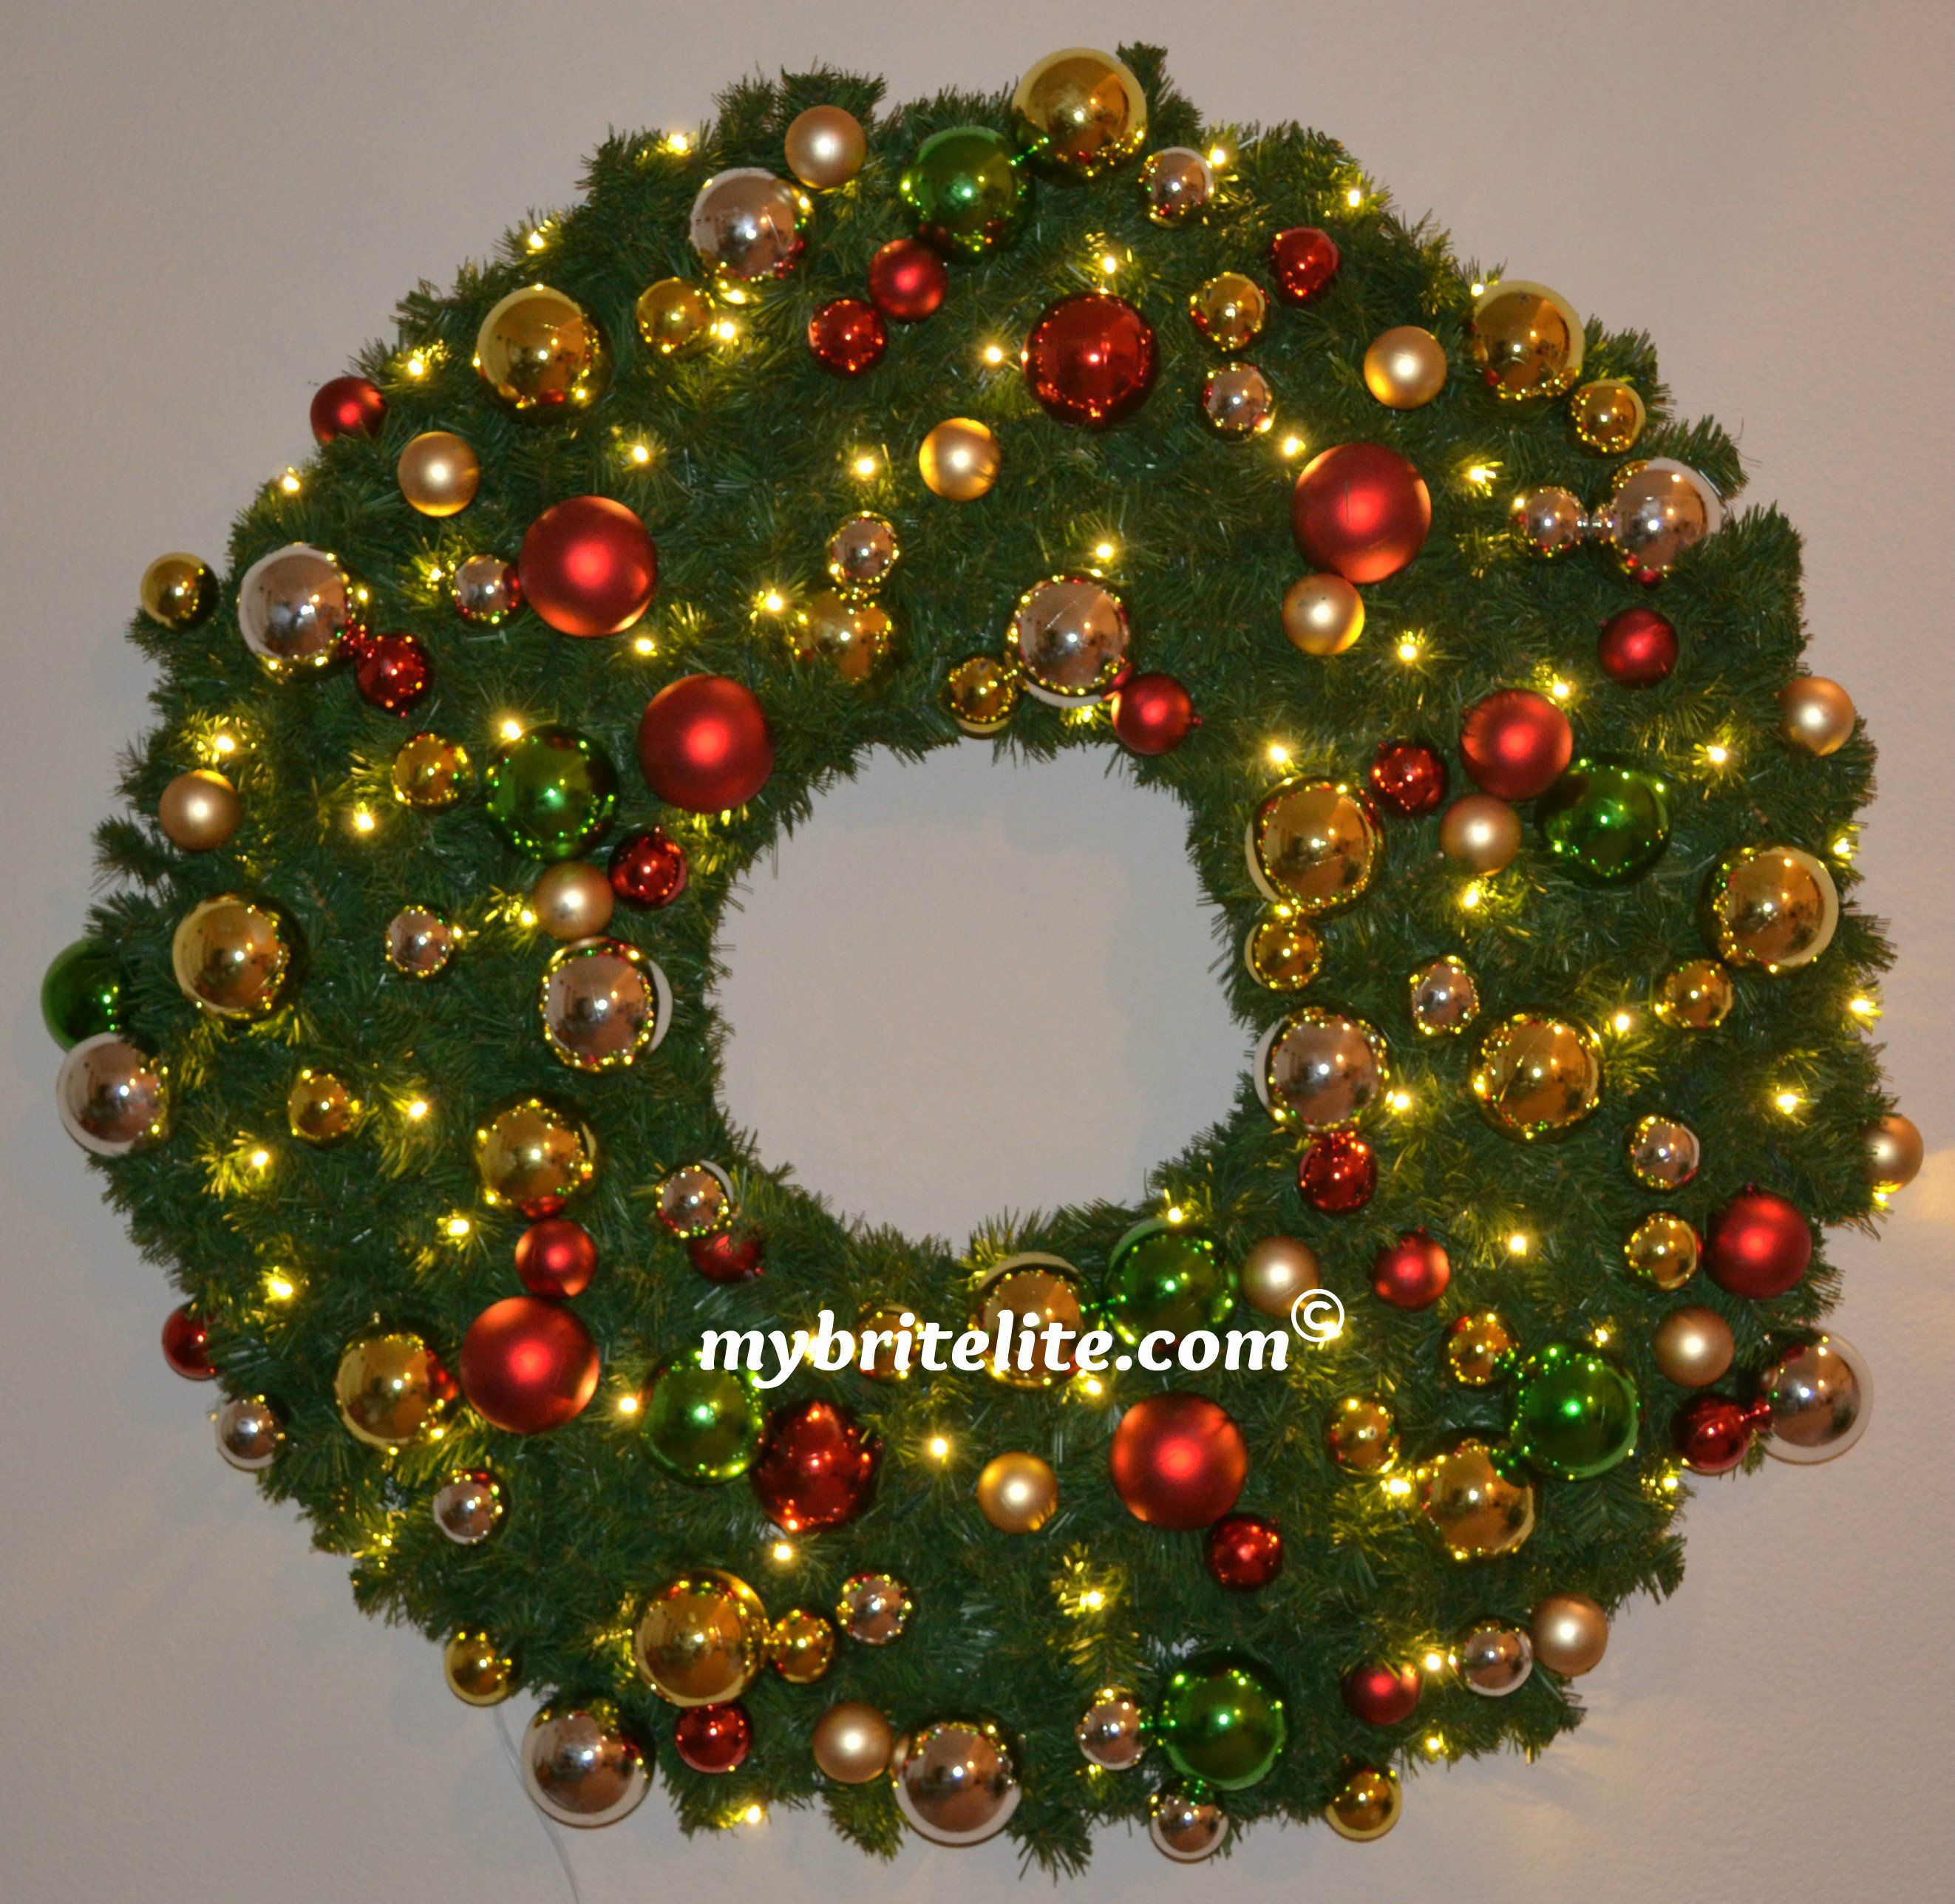 Outdoor Lighted Wreath Simple 4 Ftprelit Led Christmas Wreath With Multicolored Christmas Design Inspiration